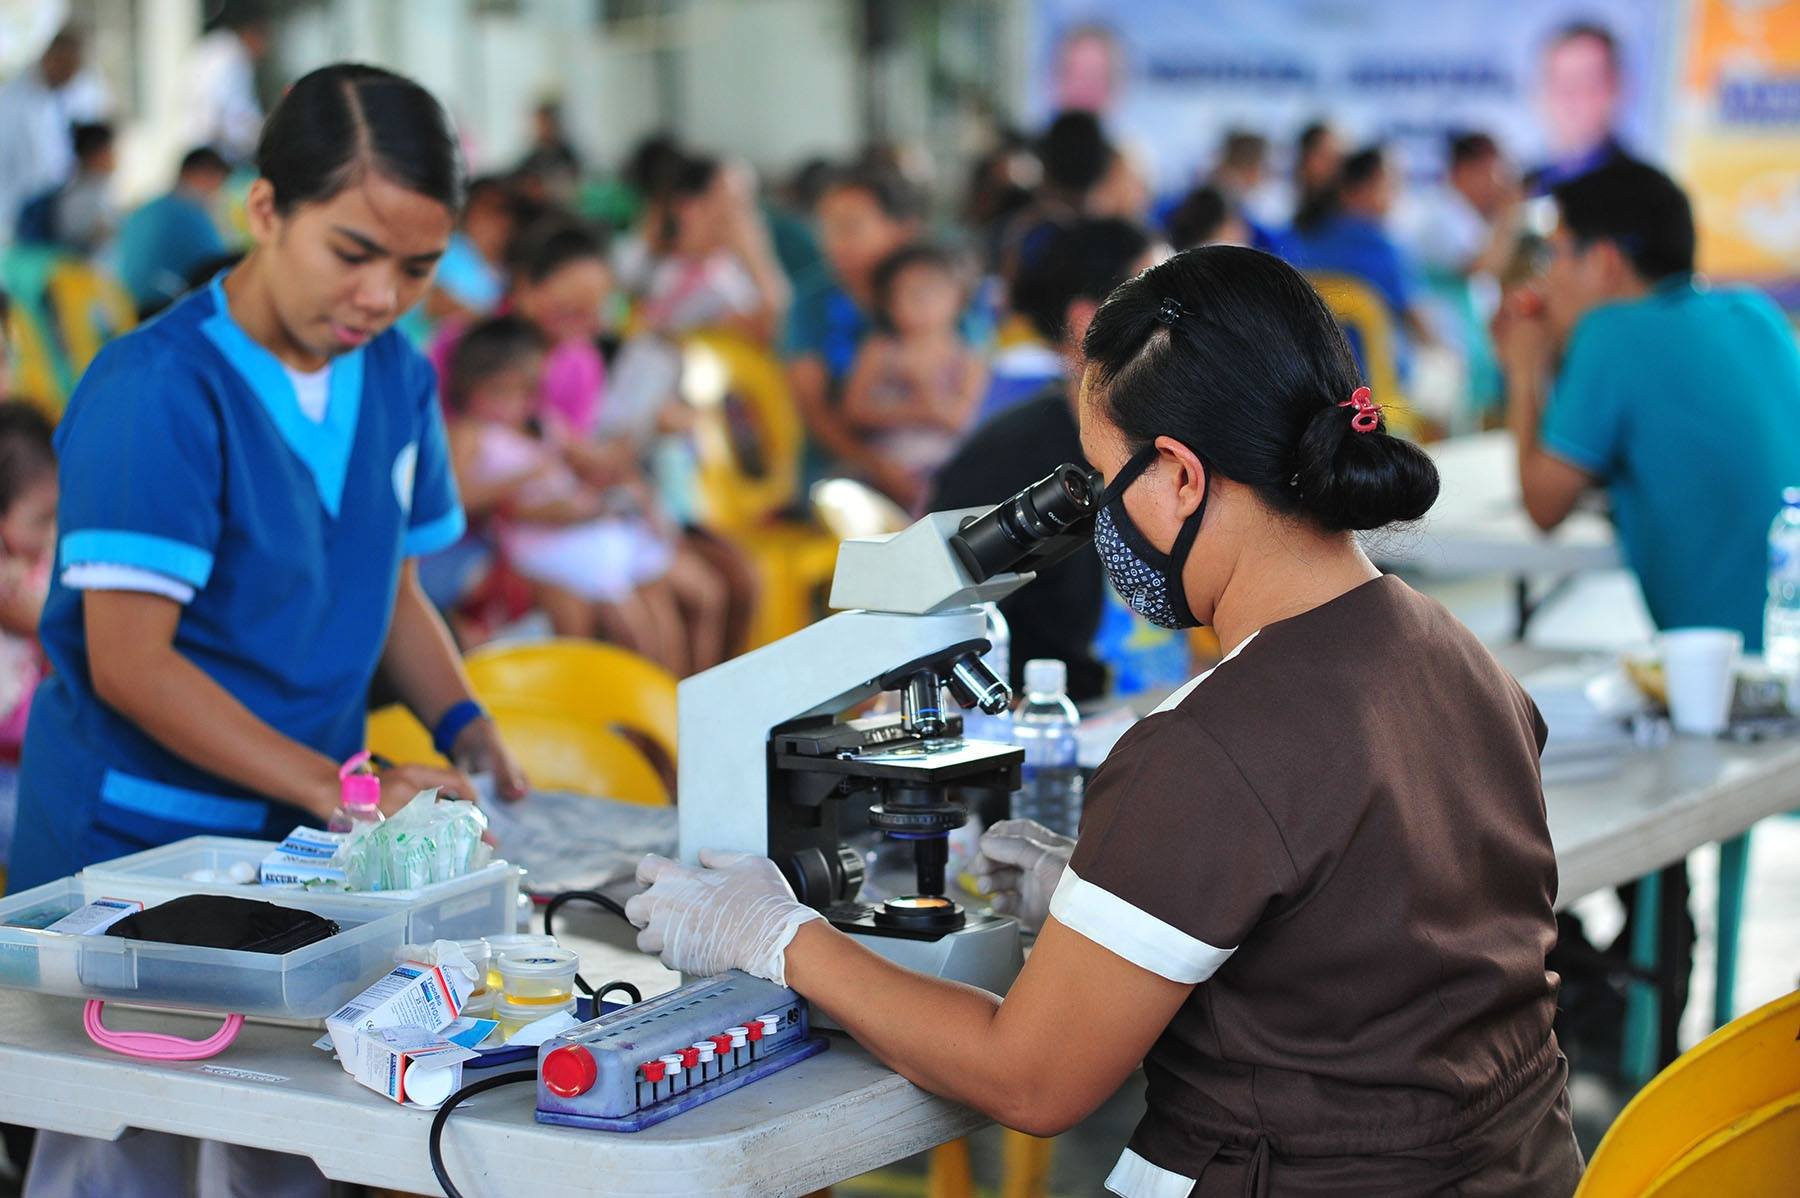 MCGI regularly holds medical missions in different parts of the country and makes use of laboratory equipment to quickly and accurately get results to patients for free, such as in this medical mission held in Paranaque City last July. (MCGI/PVI Jun Rapanan)